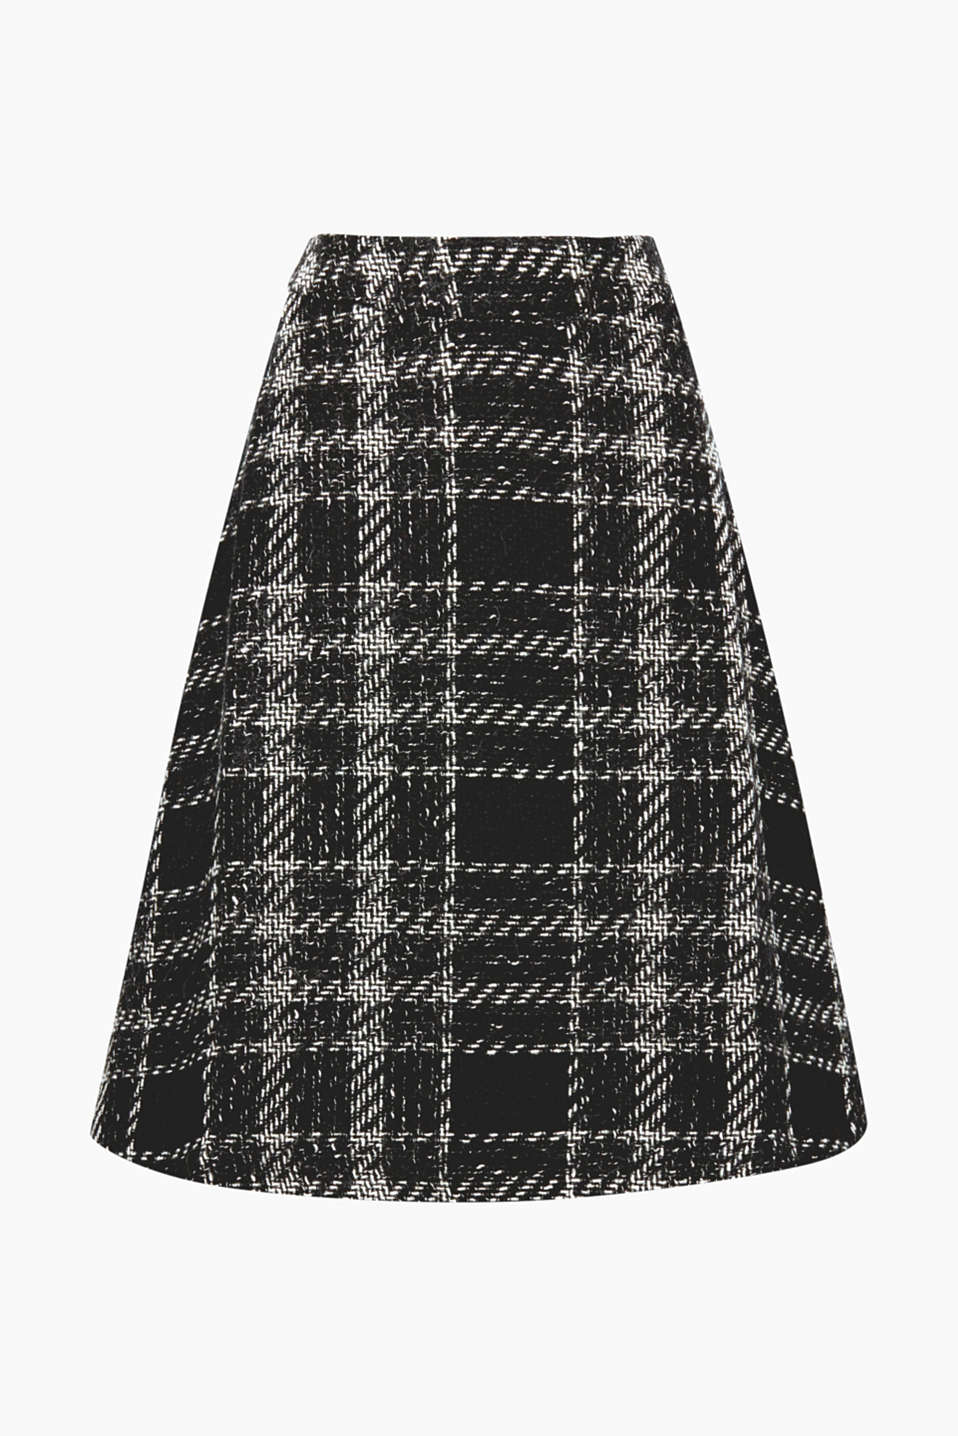 Your new fave skirt for cold winter weather comes in a contemporary midi length and boasts large checks and alpaca!